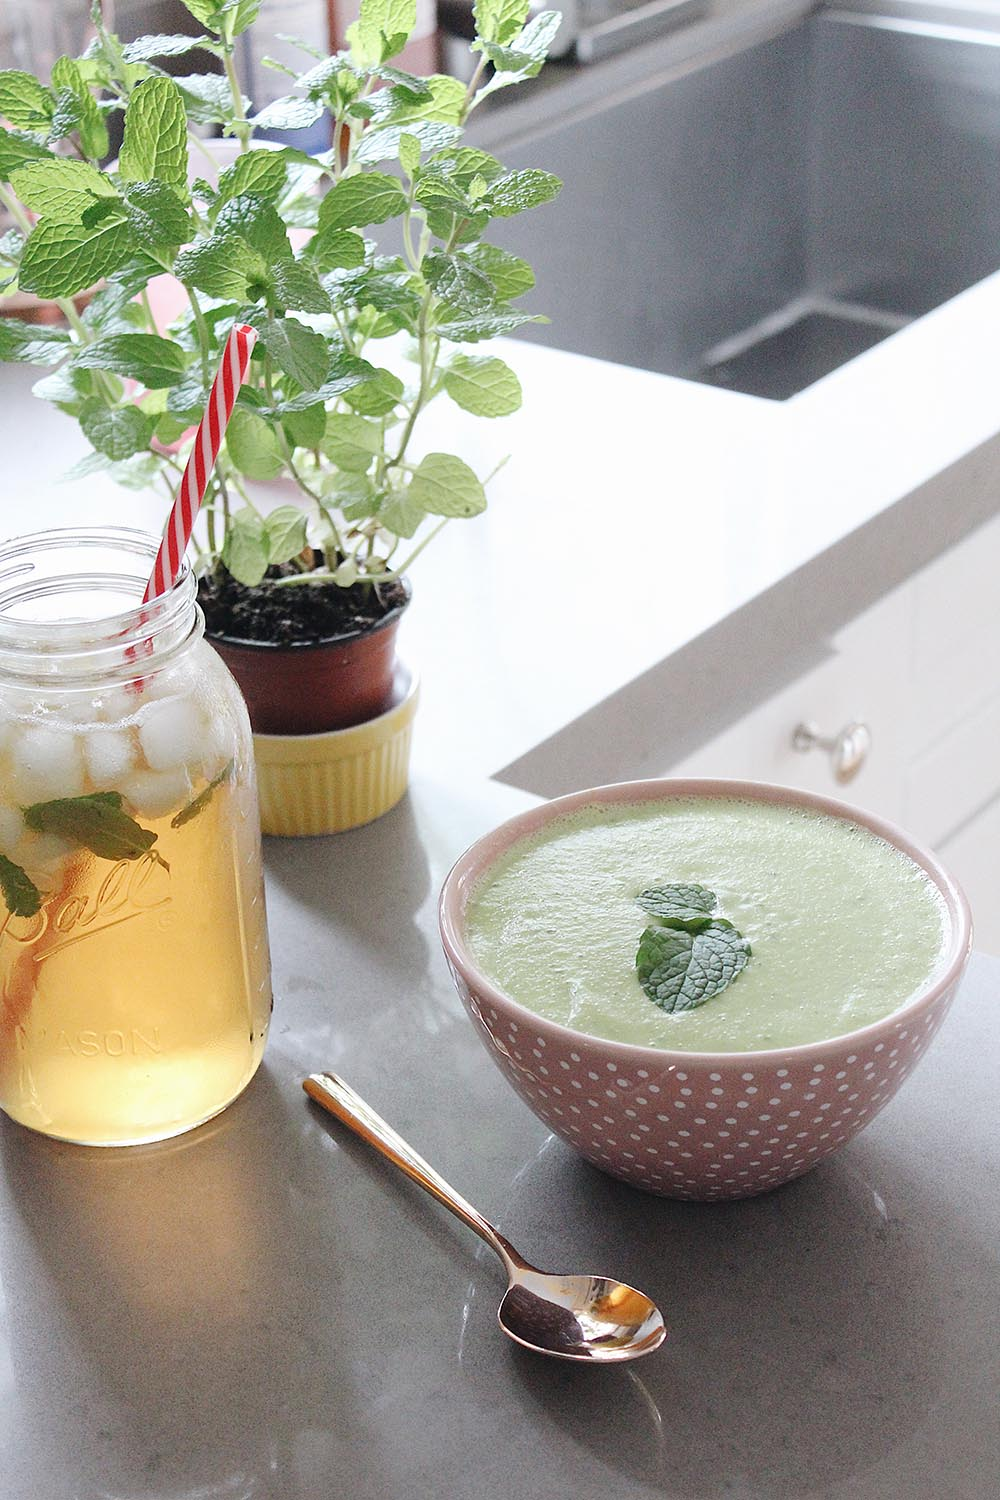 Avocado soup and mint green tea, the perfect post workout treat, featured by popular San Francisco lifestyle blogger, Just Add Glam